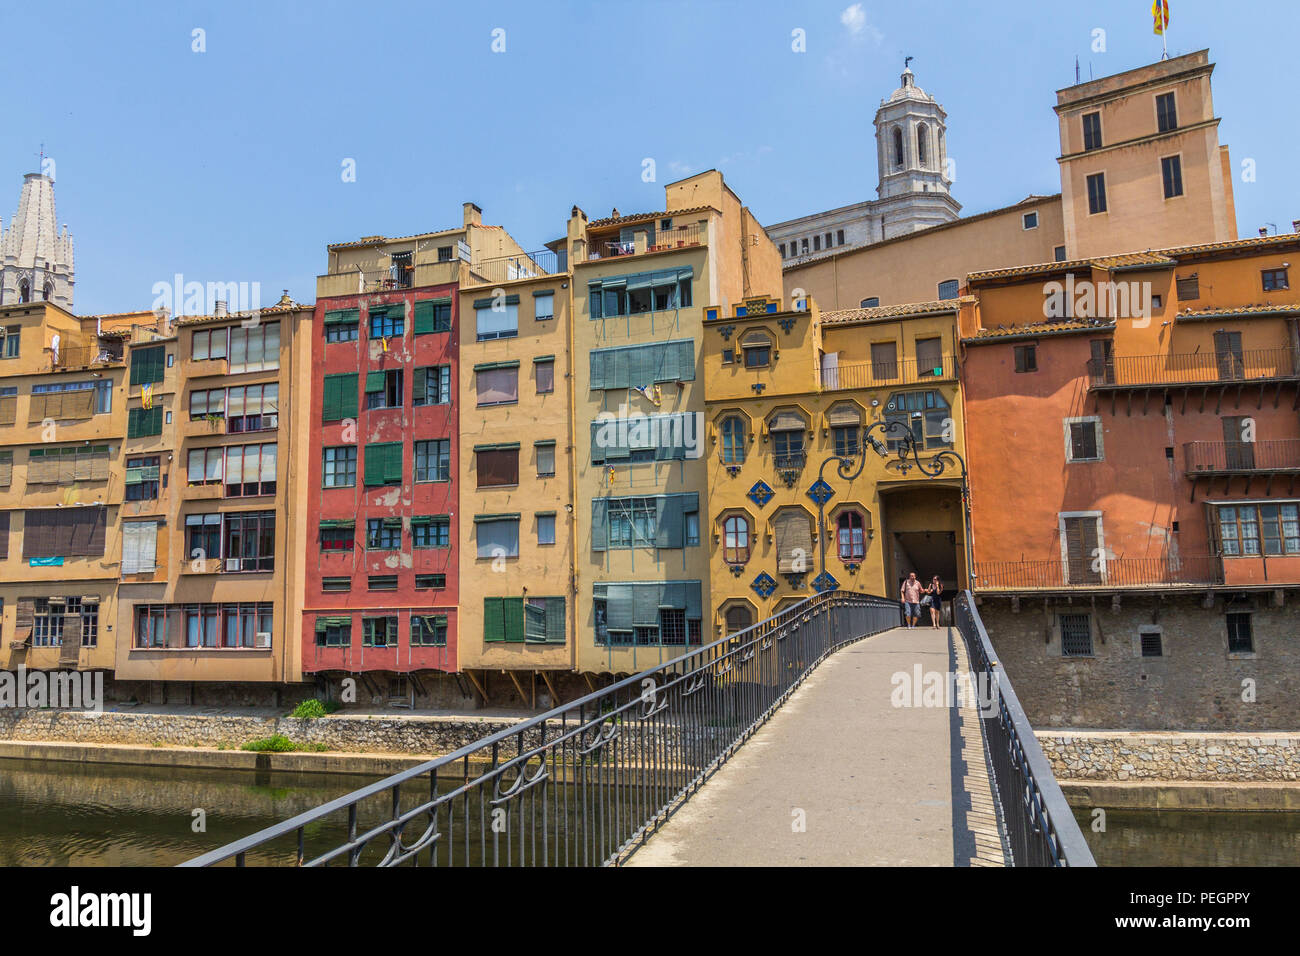 Girona. Multi-colored facades of houses on the river Onyar. Stock Photo